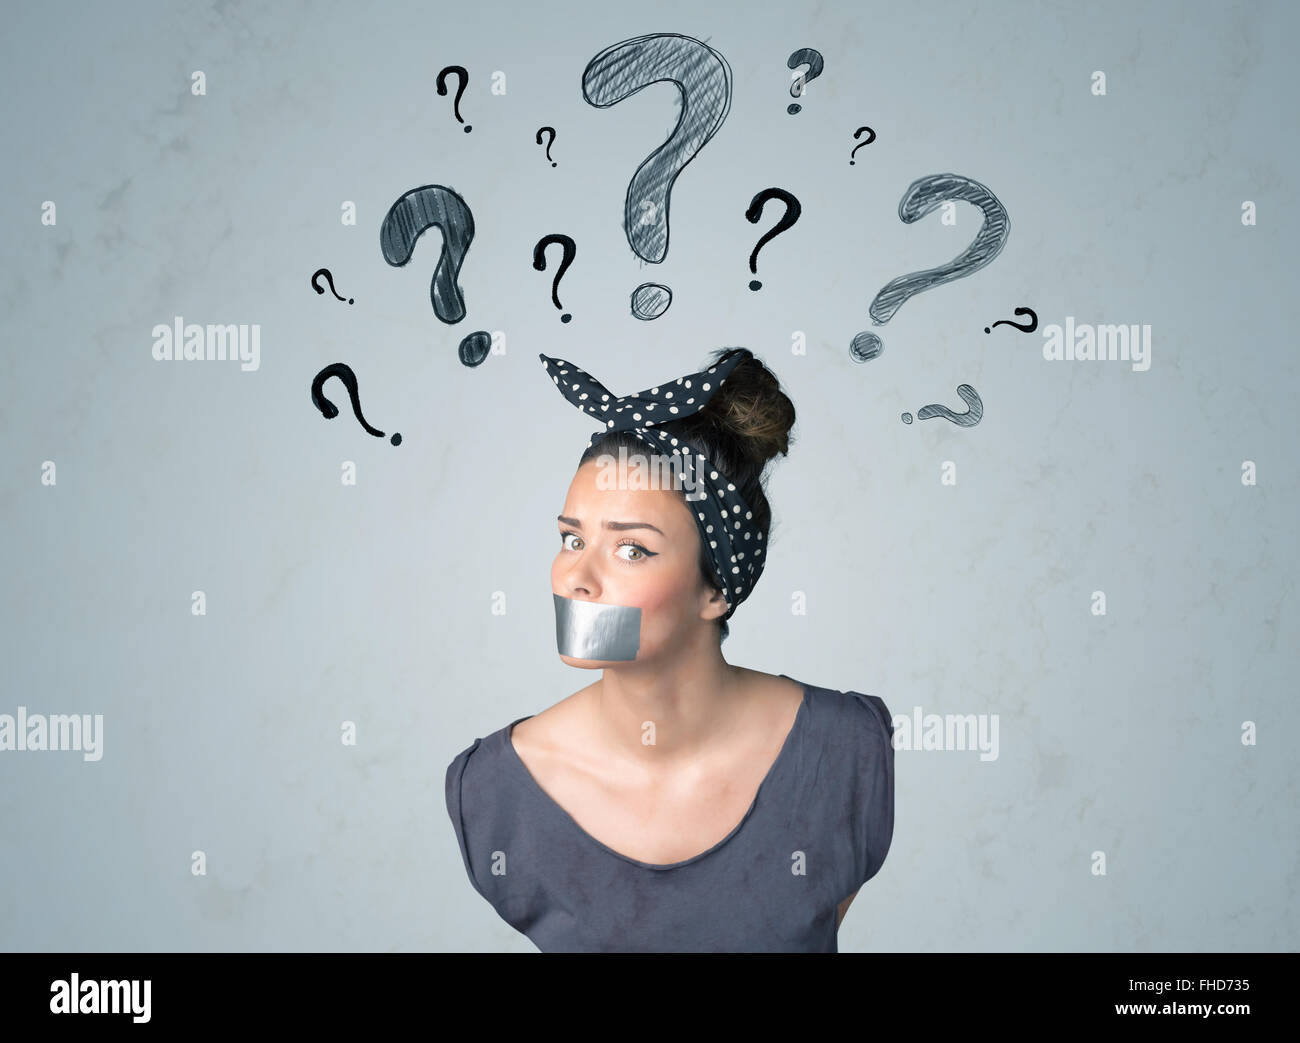 Young woman with glued mouth and question mark symbols - Stock Image